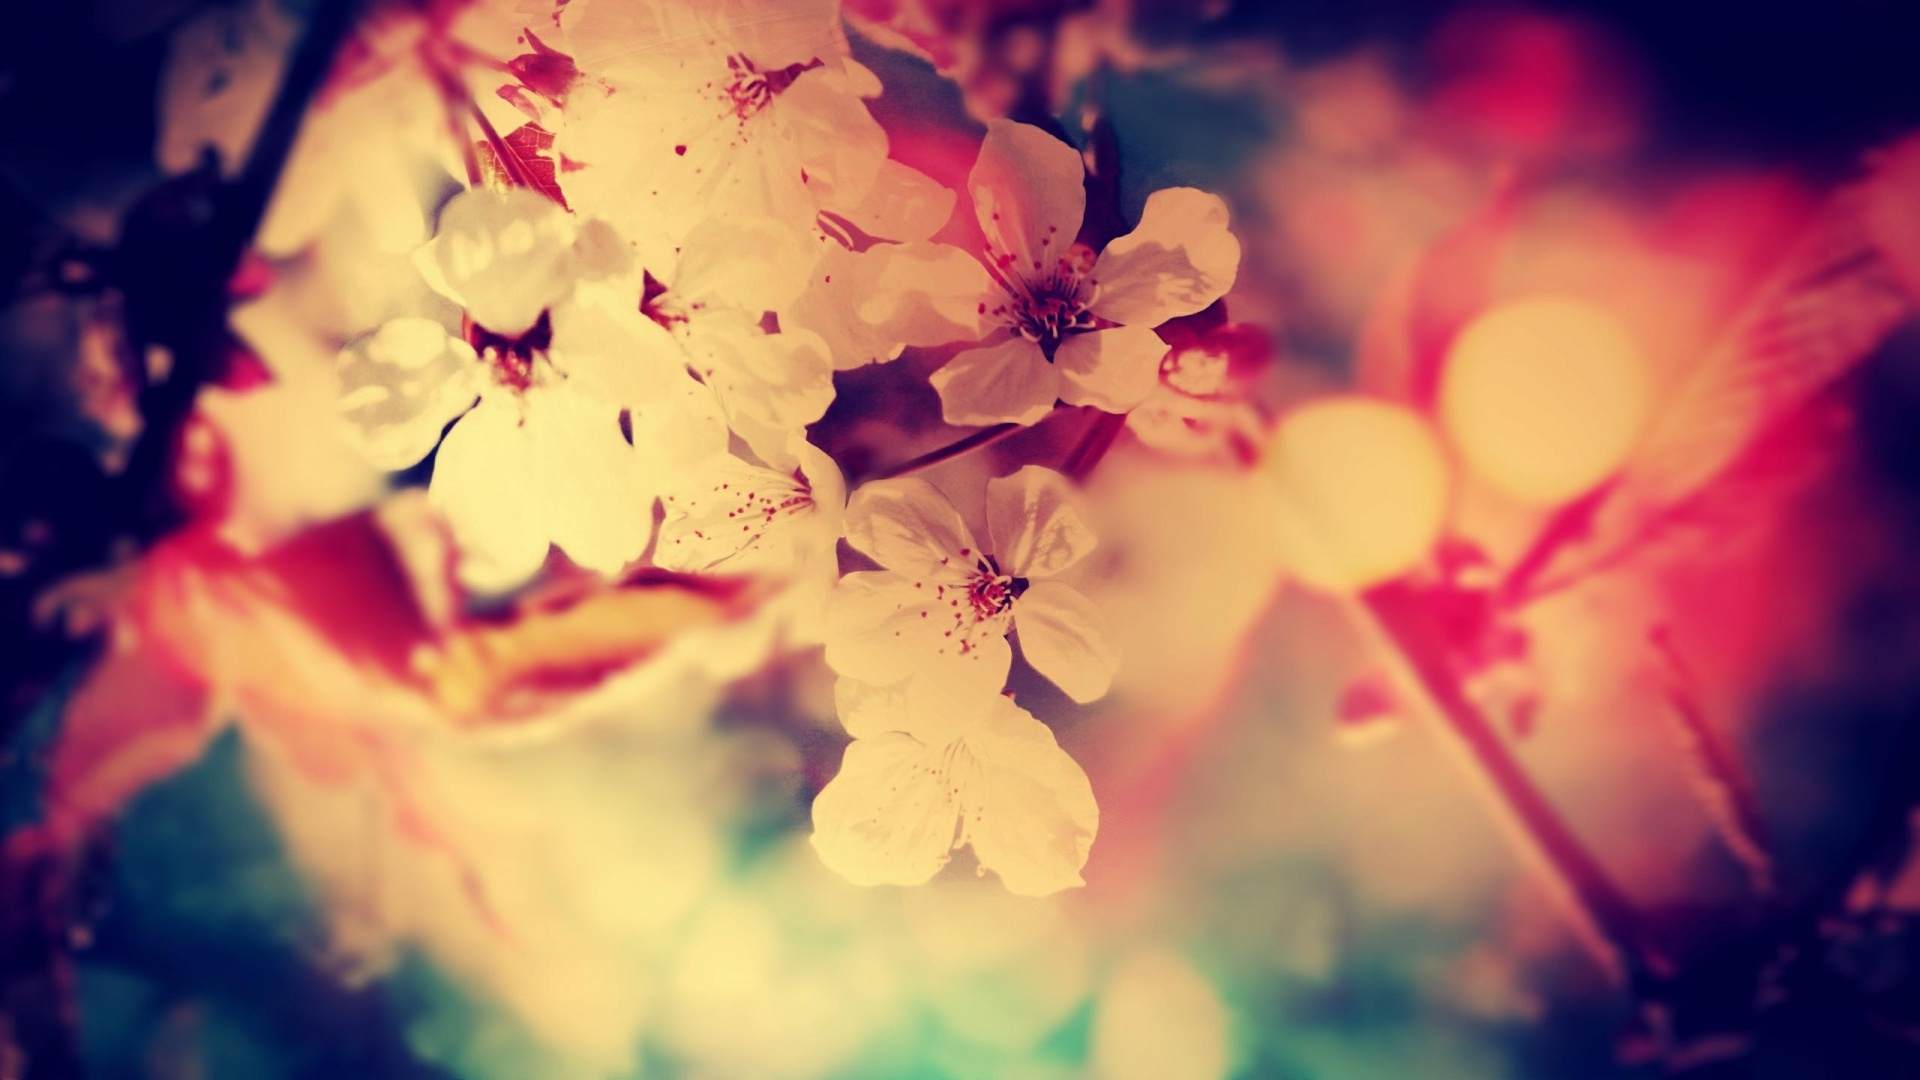 vintage flowers wallpapers categories nature wallpapers 1920x1080